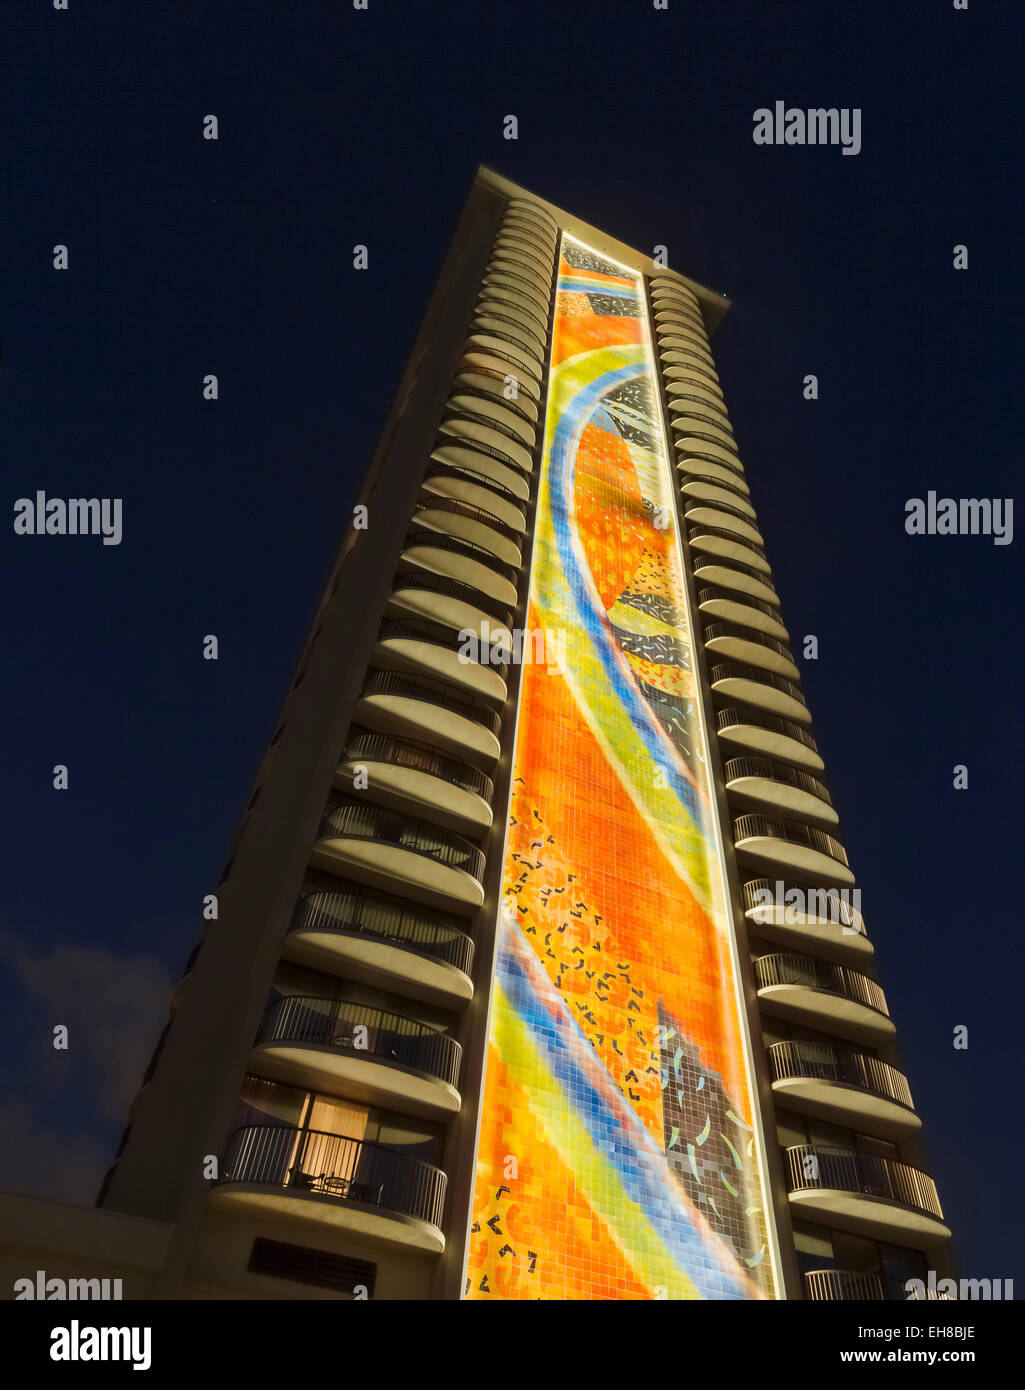 Newly restored tiling mural by Millard Sheets on Rainbow Tower at Hilton Hawaiian Village Hotel in Waikiki, Oahu, - Stock Image